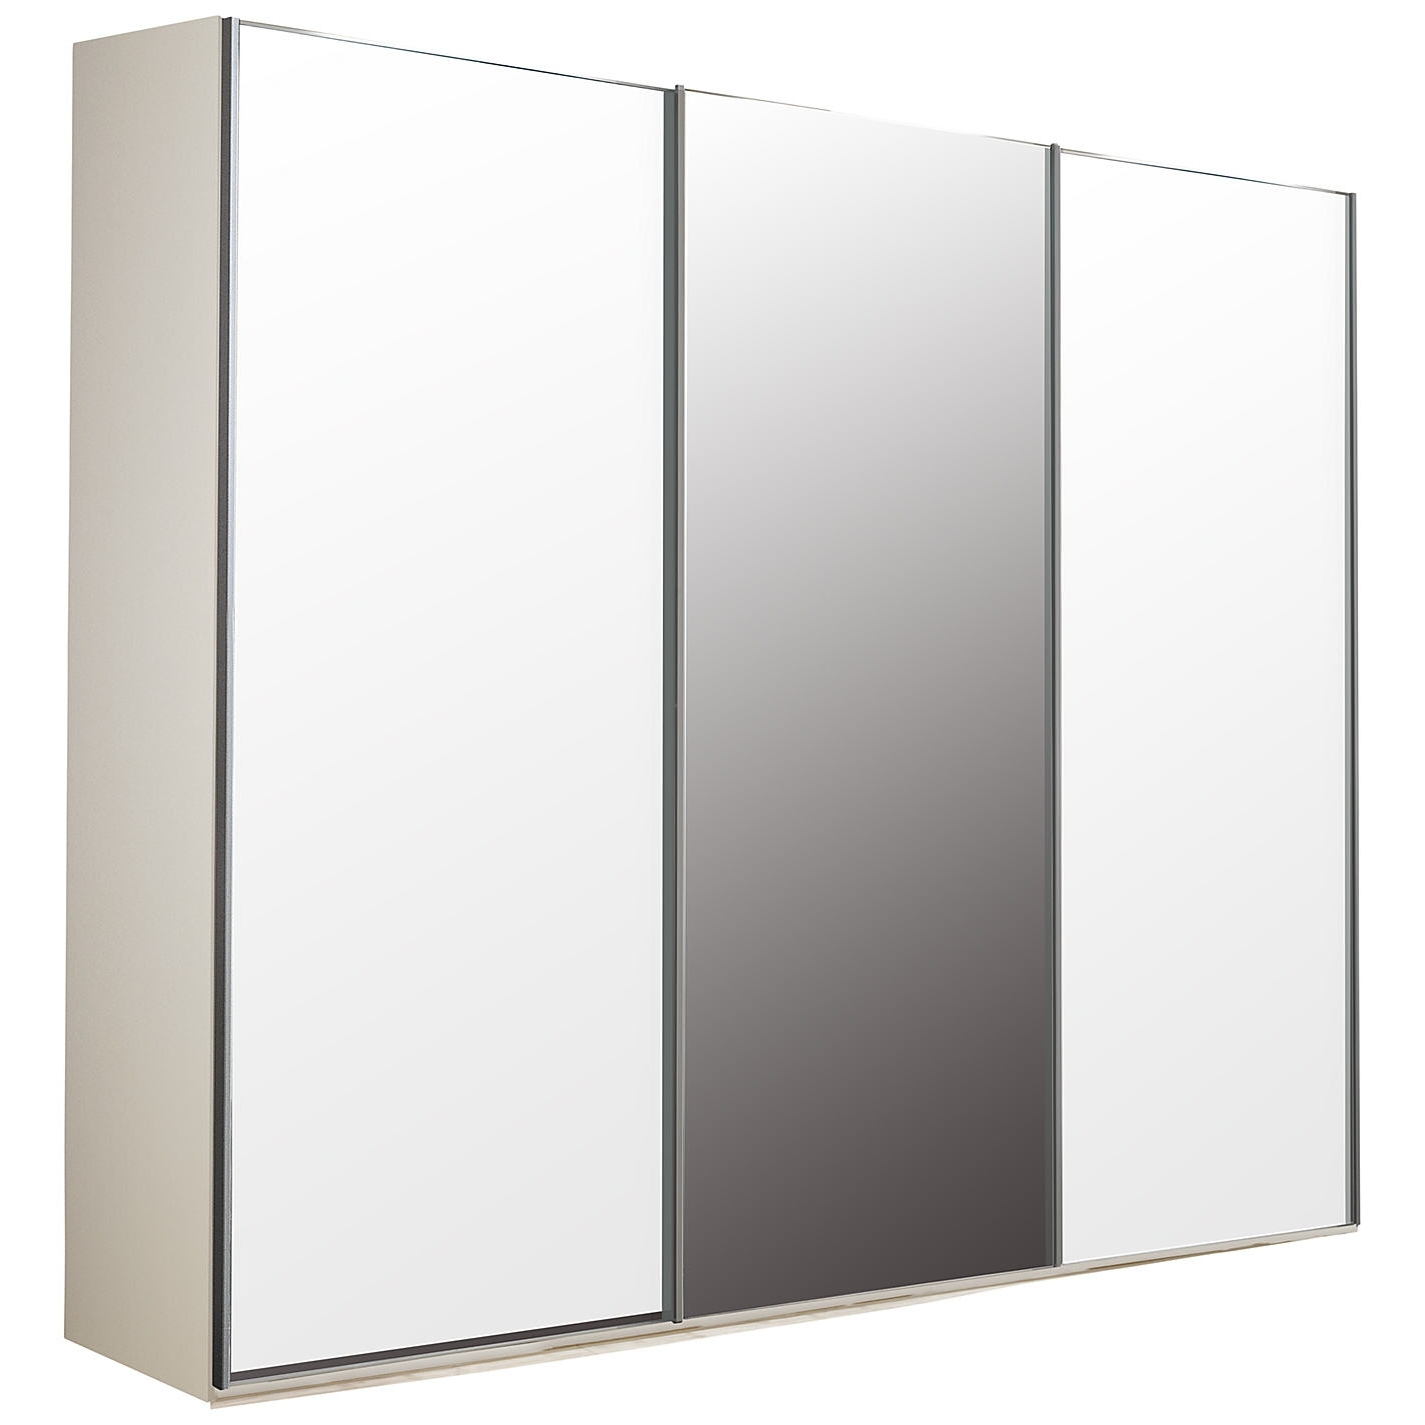 Triple Mirrored Wardrobes Pertaining To Widely Used Mirror Design Ideas: John Lewis Mirror Wardrobes Sliding Doors (View 6 of 15)